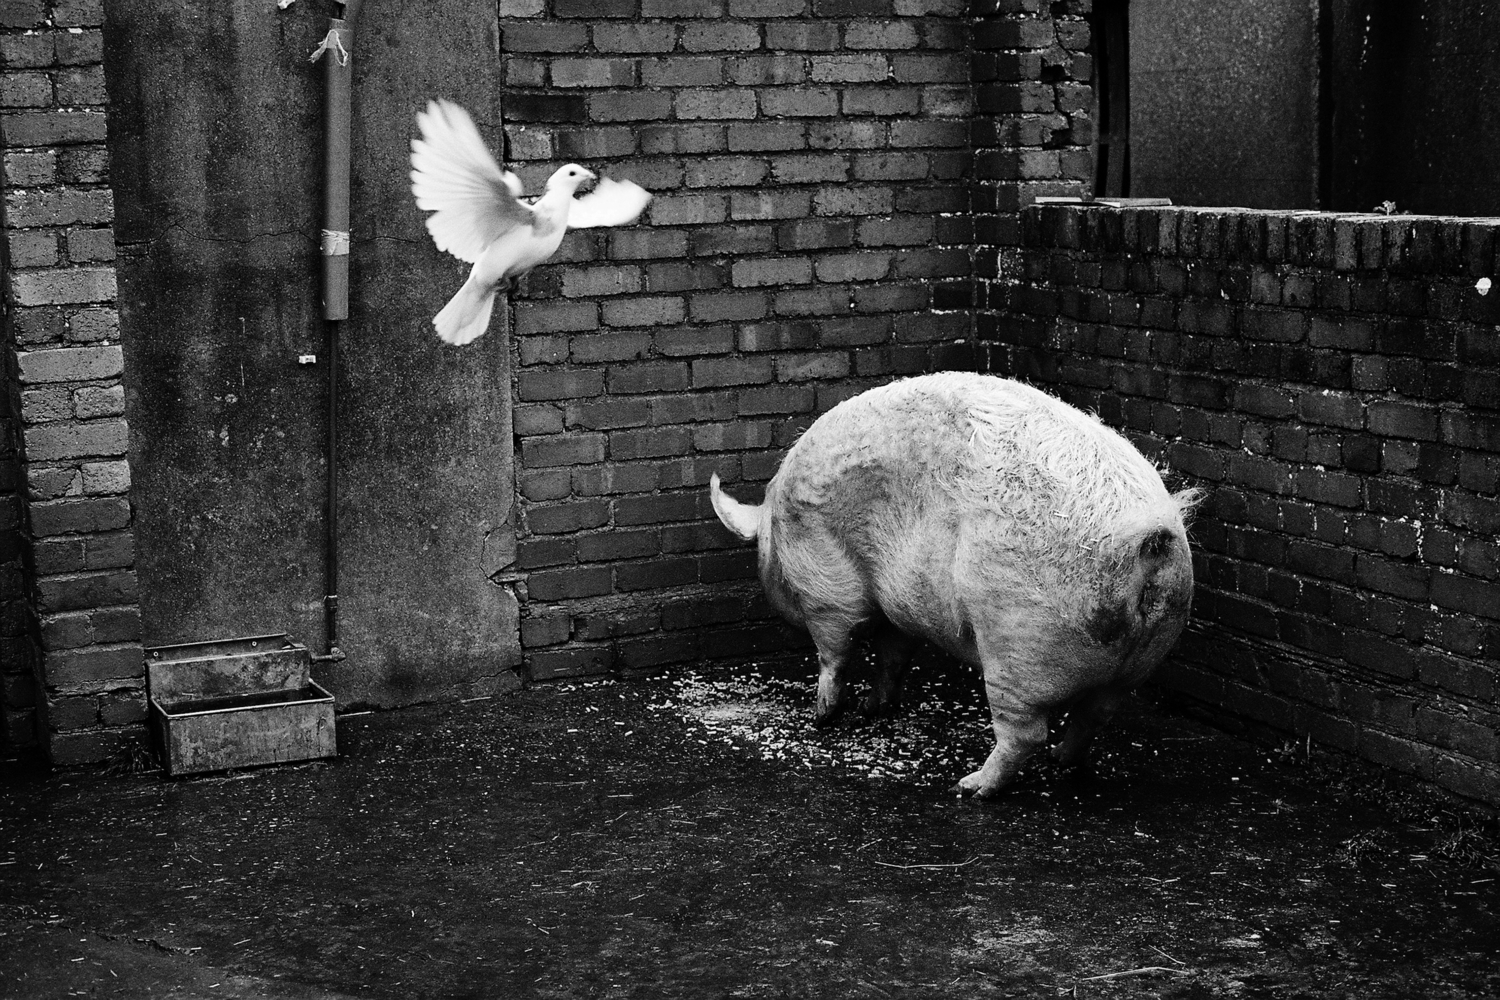 pig and a white bird in a farm yard